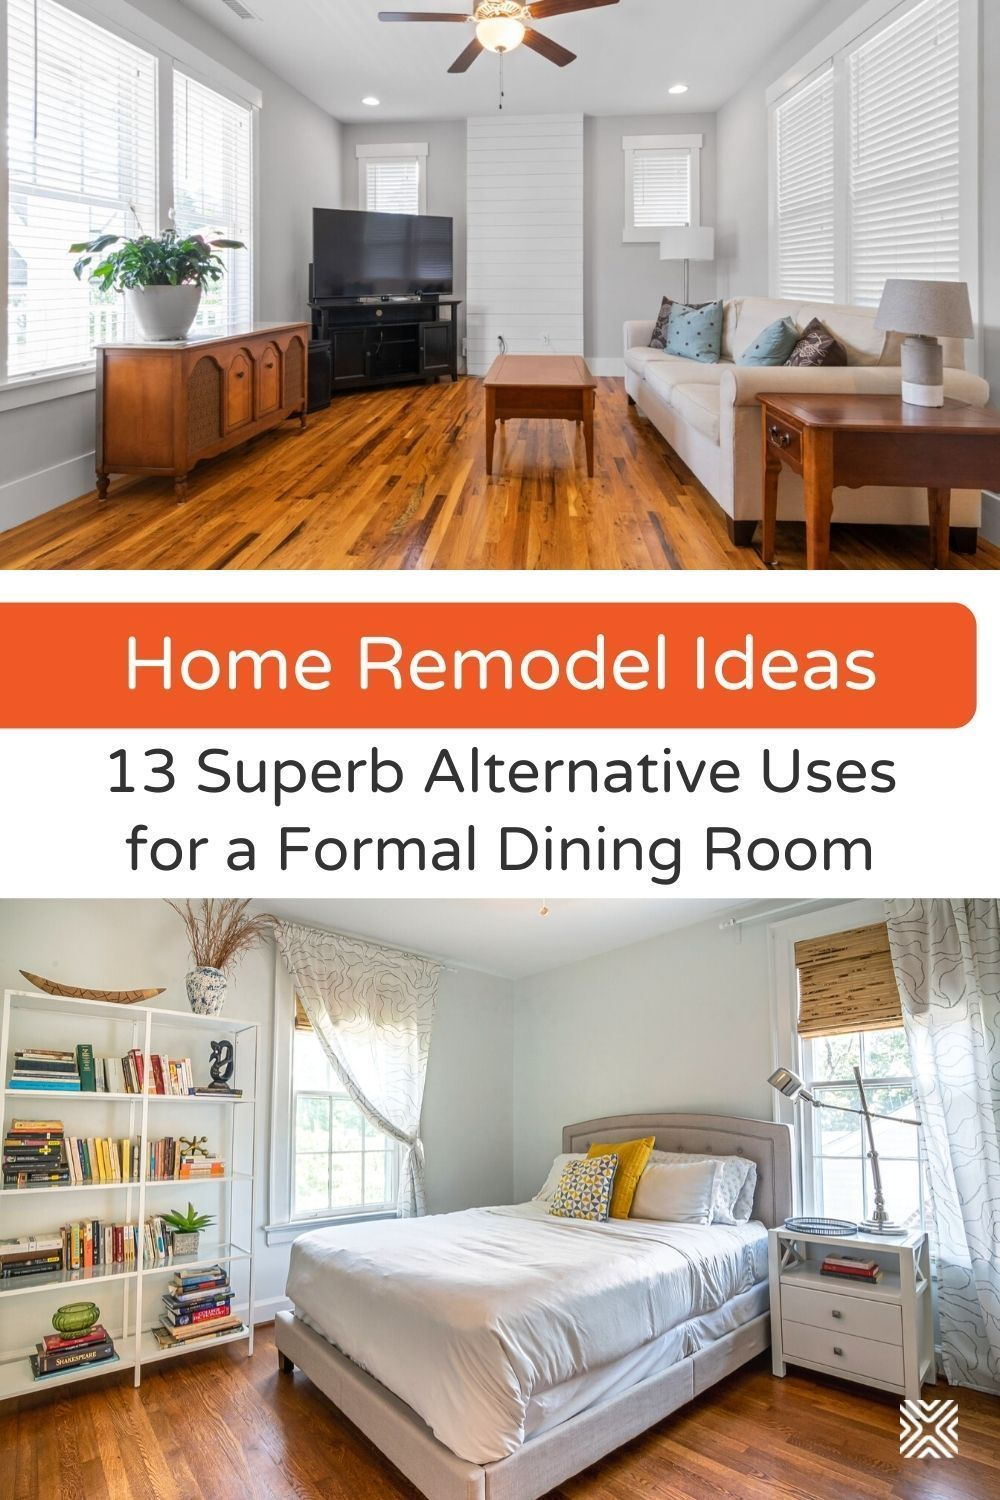 Alternative Uses For Your Formal Dining Room 13 Awesome Ideas In 2021 Dining Room Small Living Room Alternative Uses Dining Room Alternative Dining room into bedroom